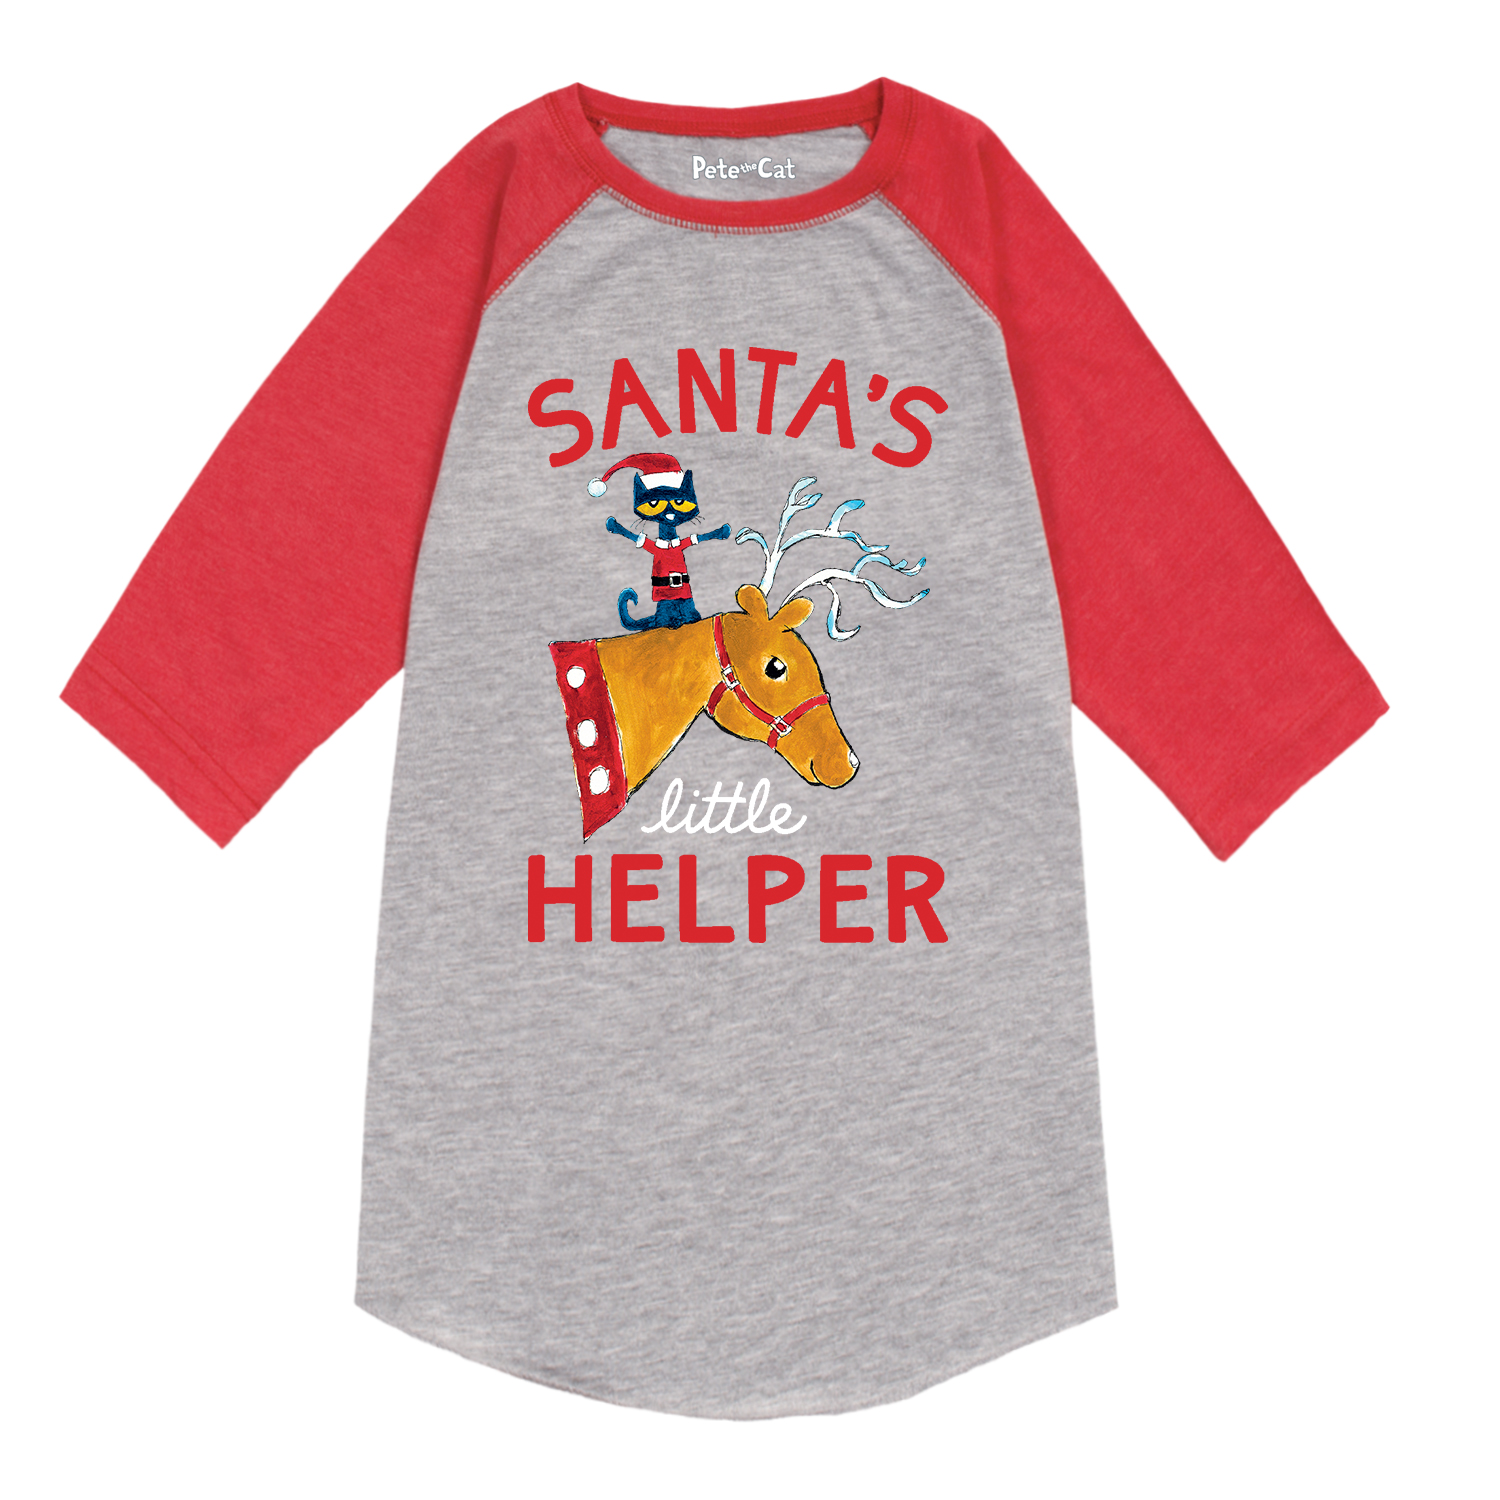 Pete the Cat Santa's lil' Helper Toddler Raglan